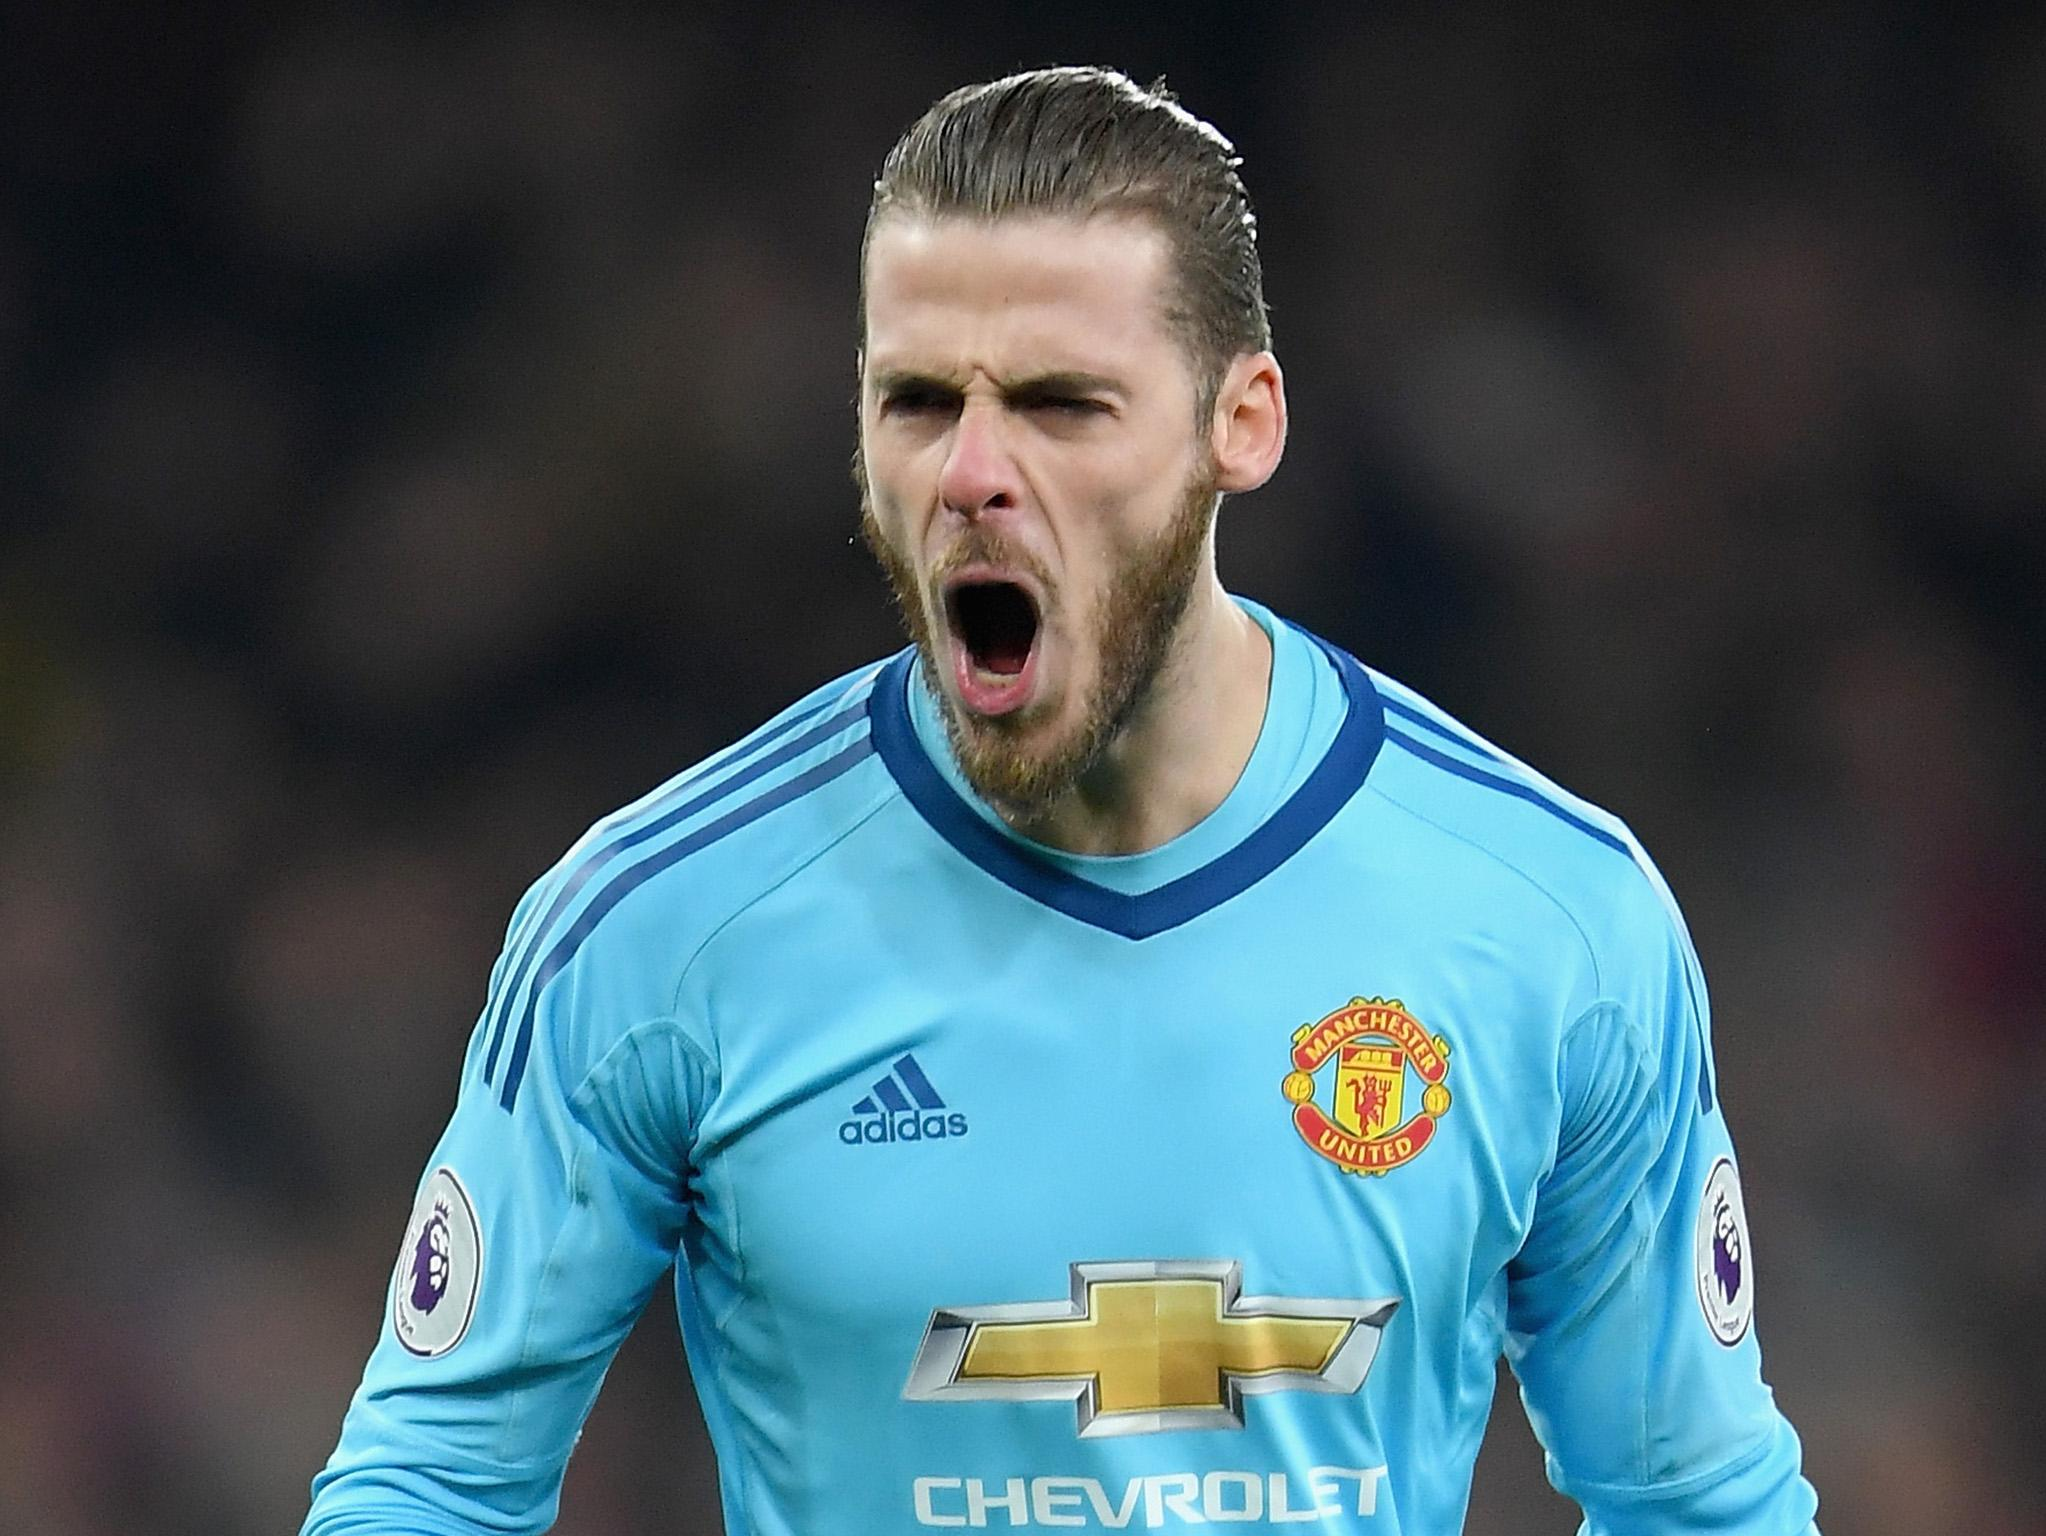 Jose Mourinho hails David de Gea as the best goalkeeper in the world after heroics at Arsenal